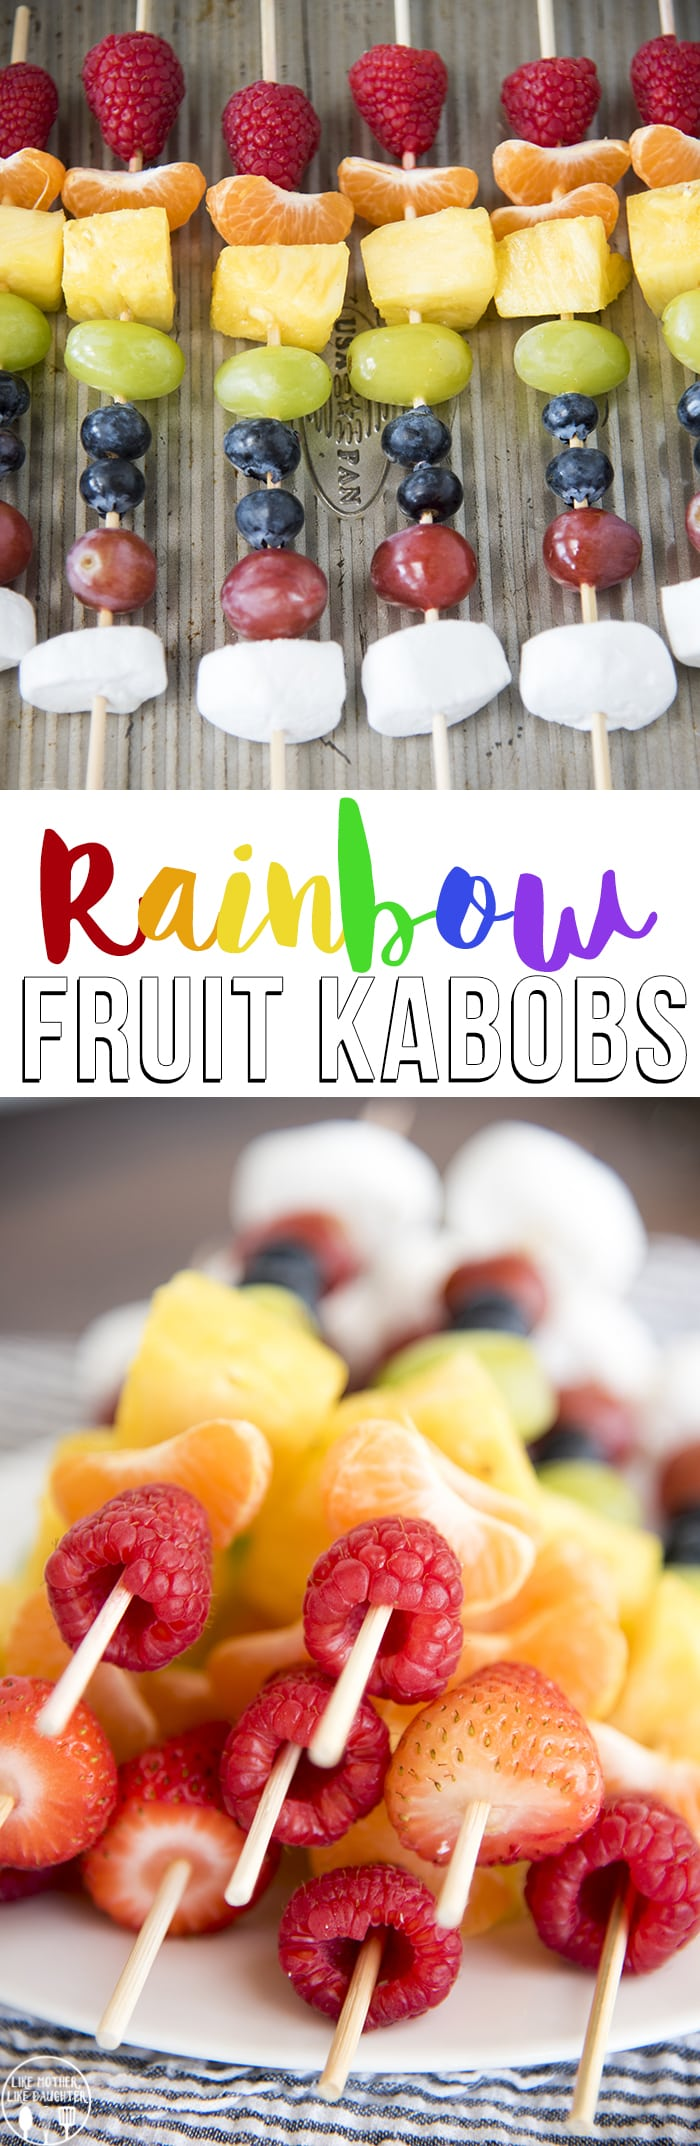 ainbow fruit kabobs are delicious and colorful healthy snack that adults and kids will love!